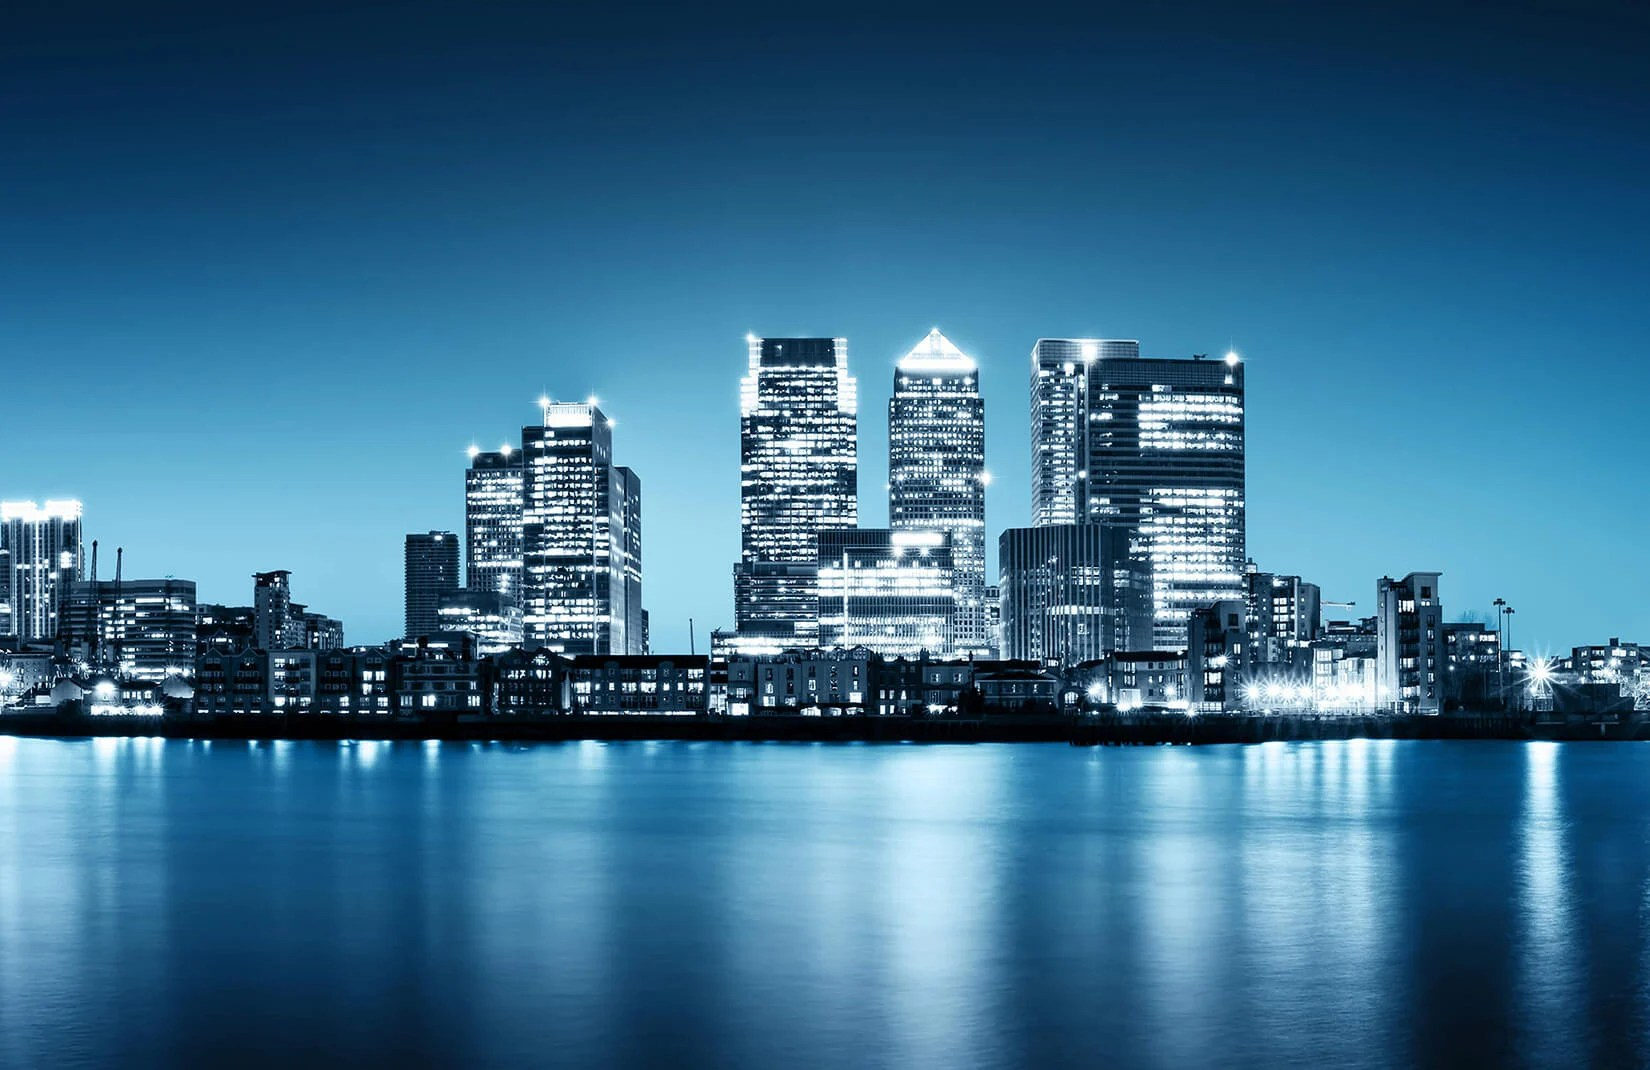 Car Black And Green Wallpaper Canary Wharf Skyline Wallpaper Wall Mural